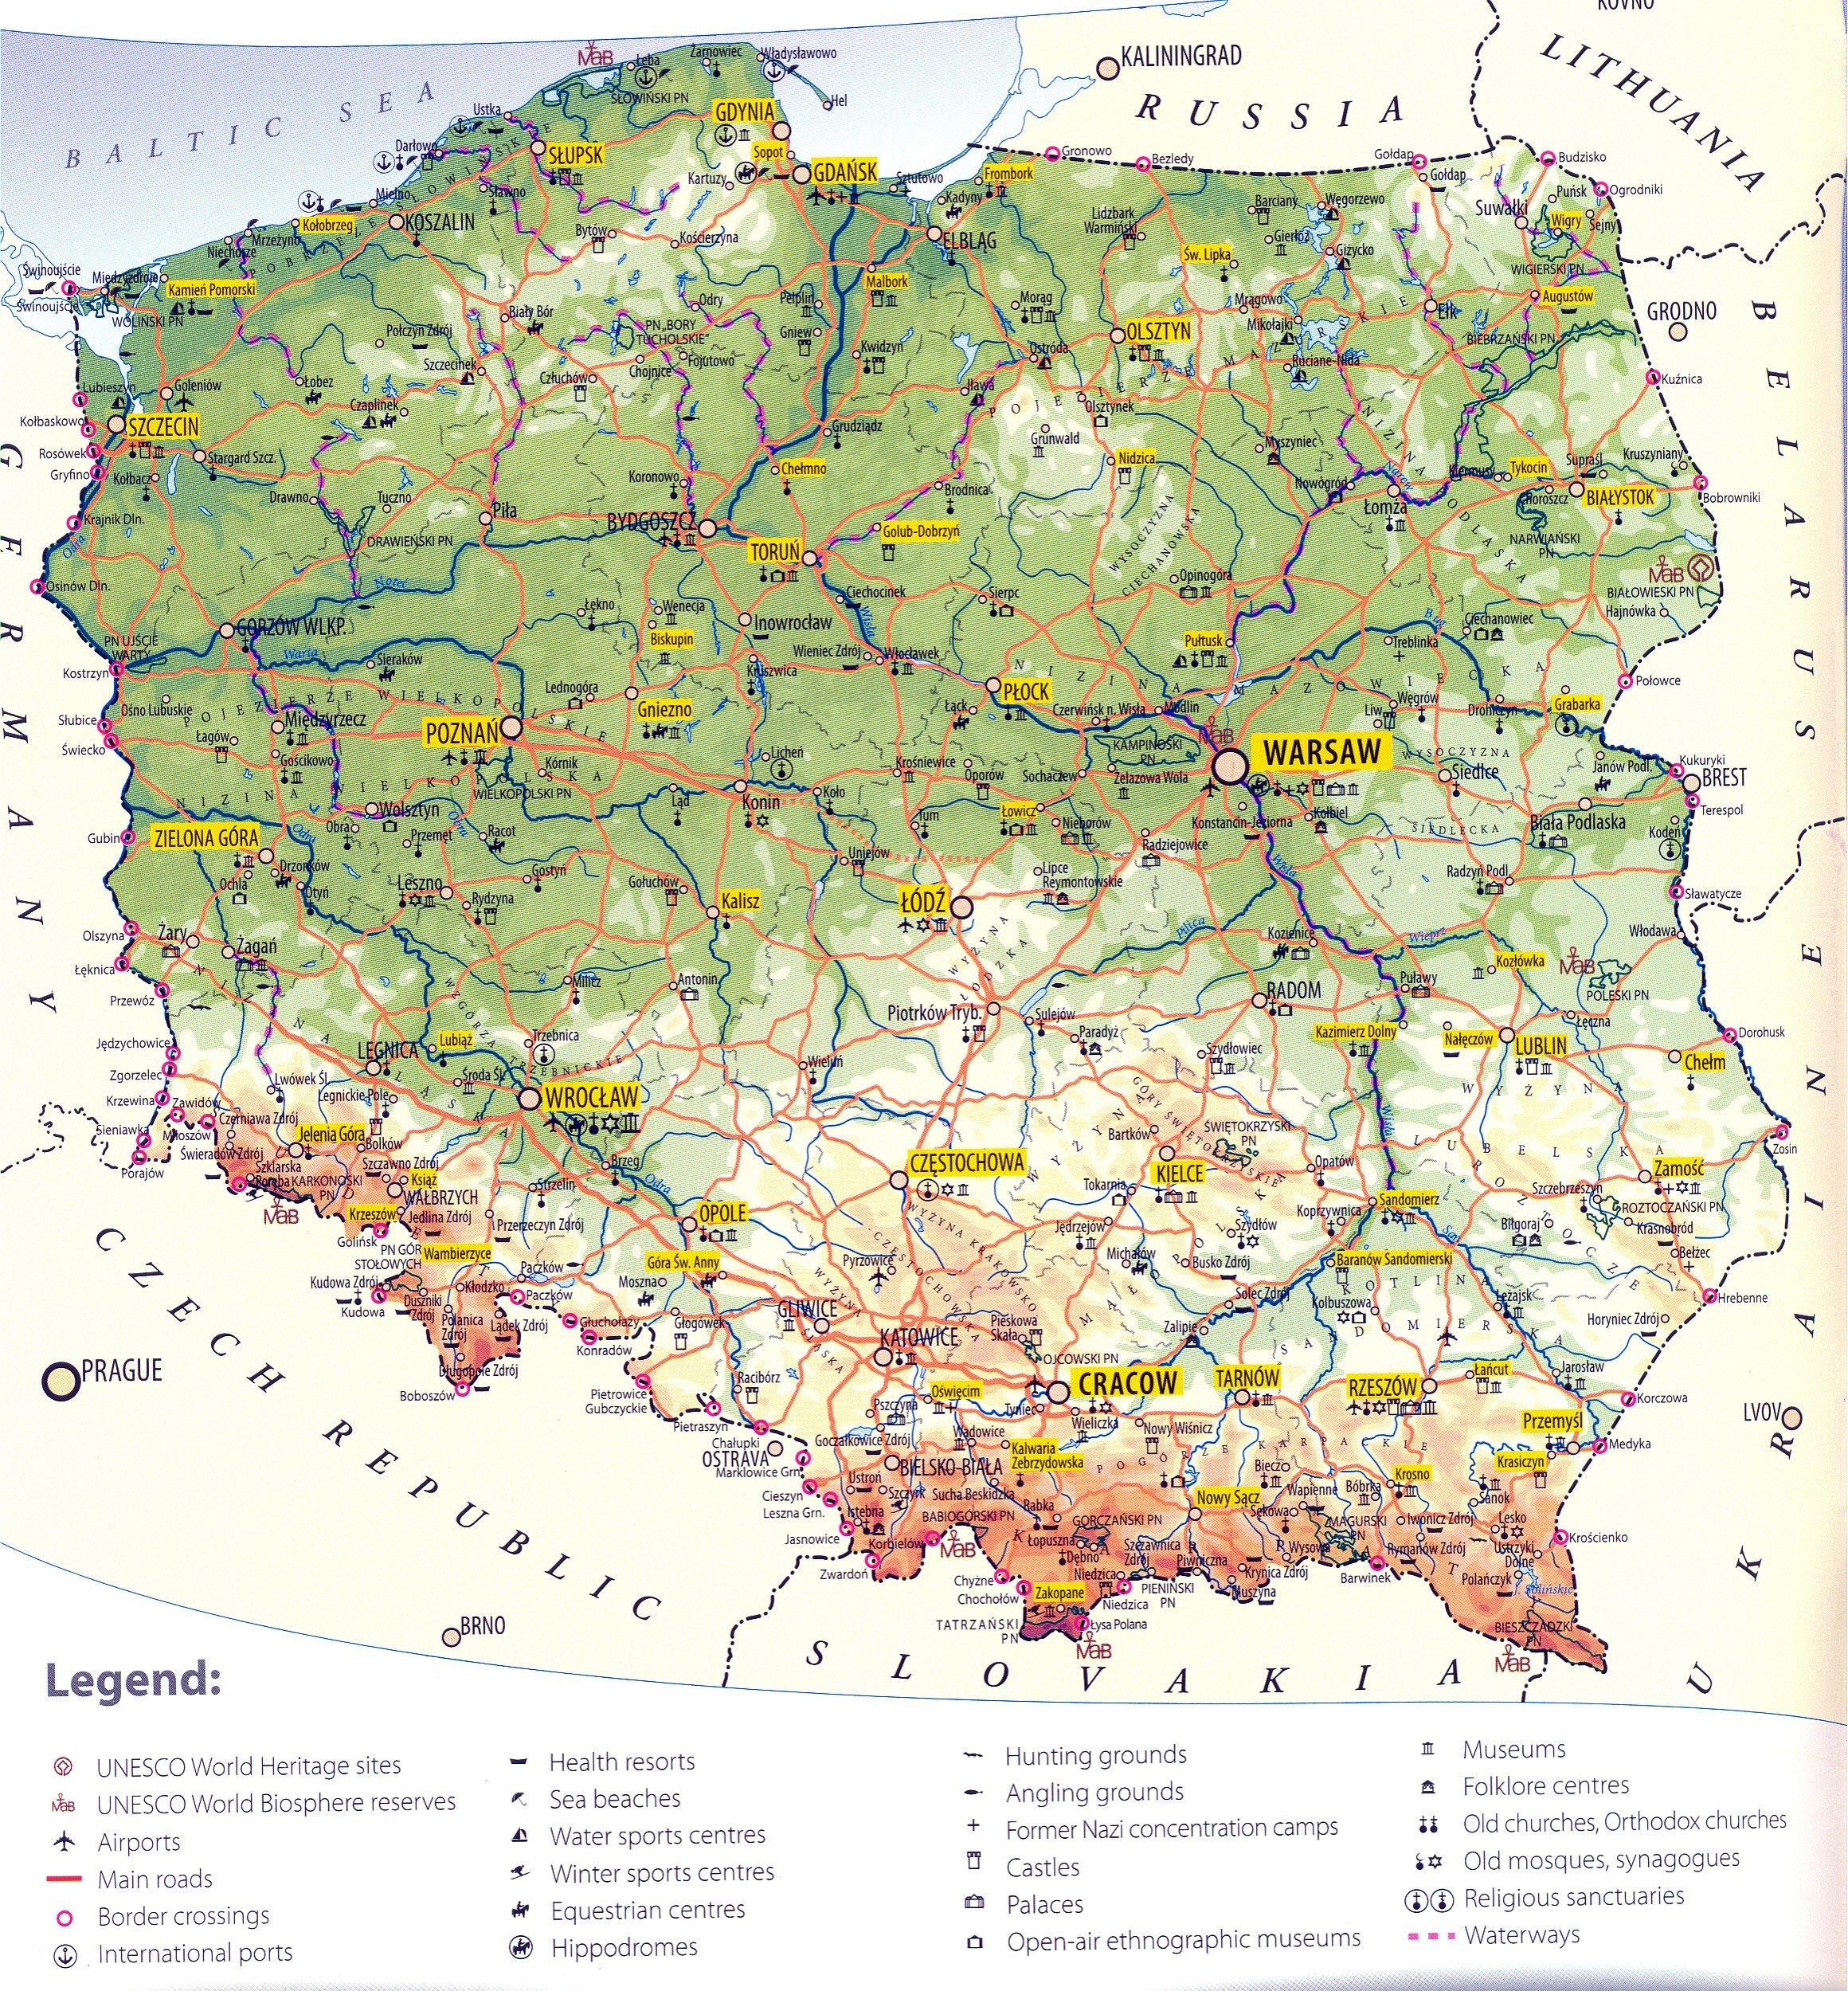 Lomza Poland Map.Poland Maps Printable Maps Of Poland For Download